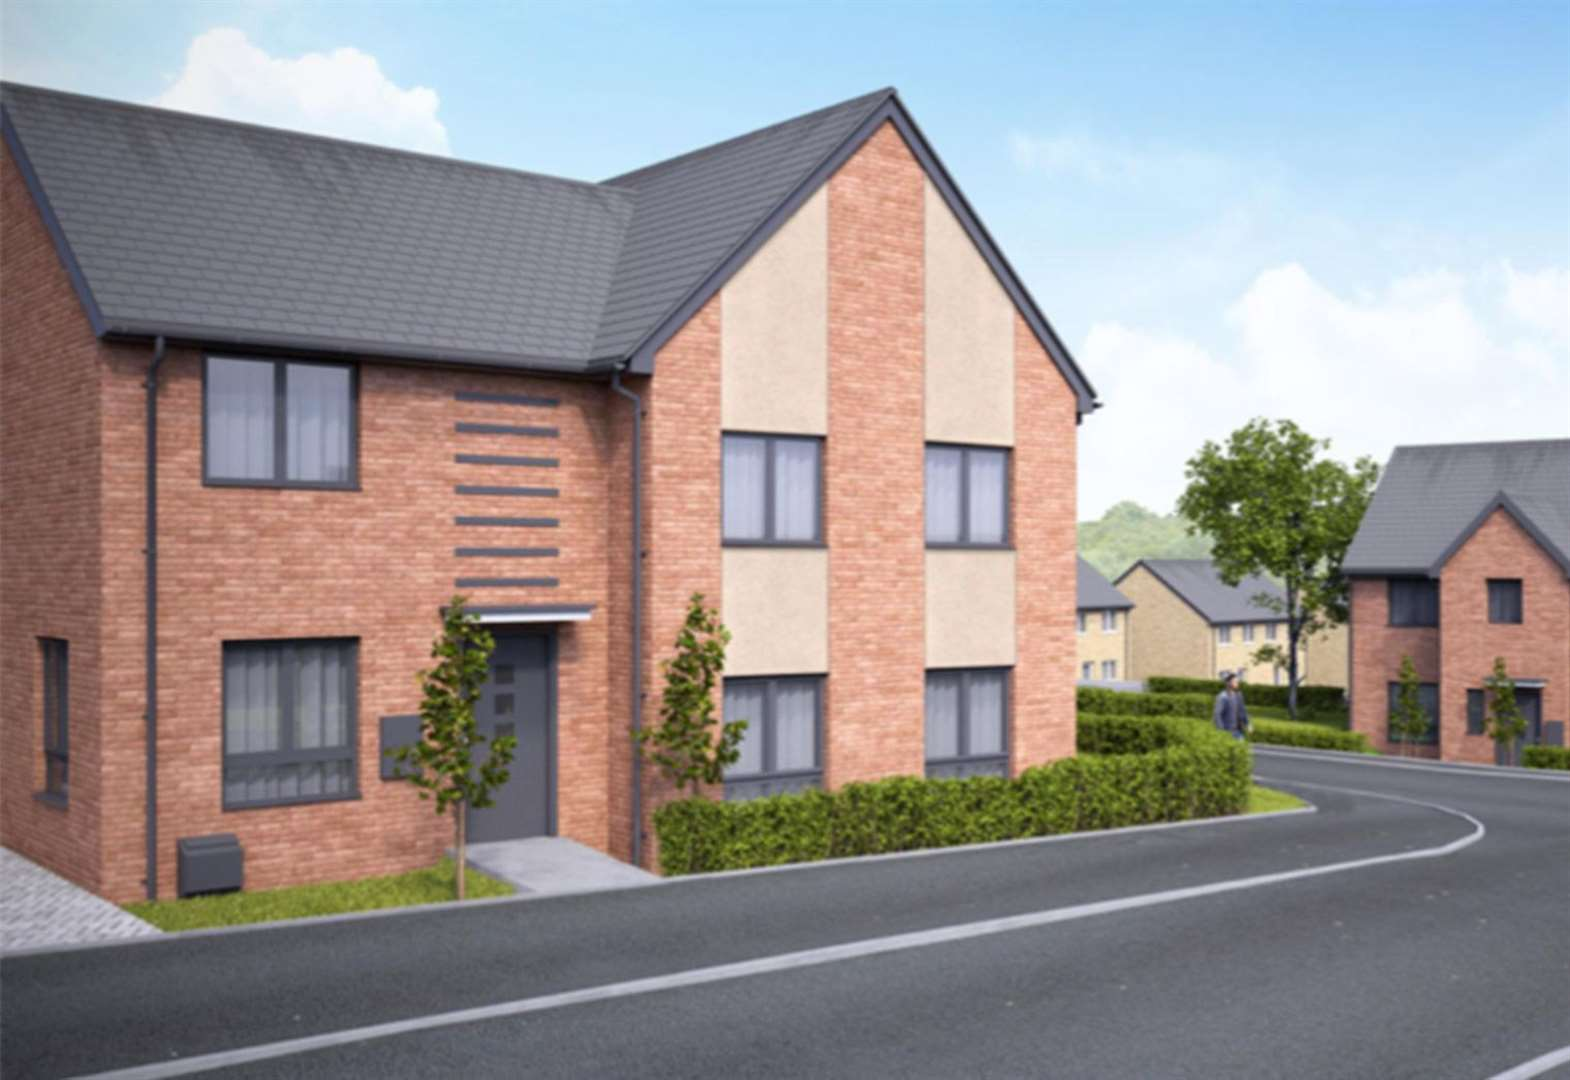 Plans for 46 affordable homes in Great Gonerby are recommended for approval